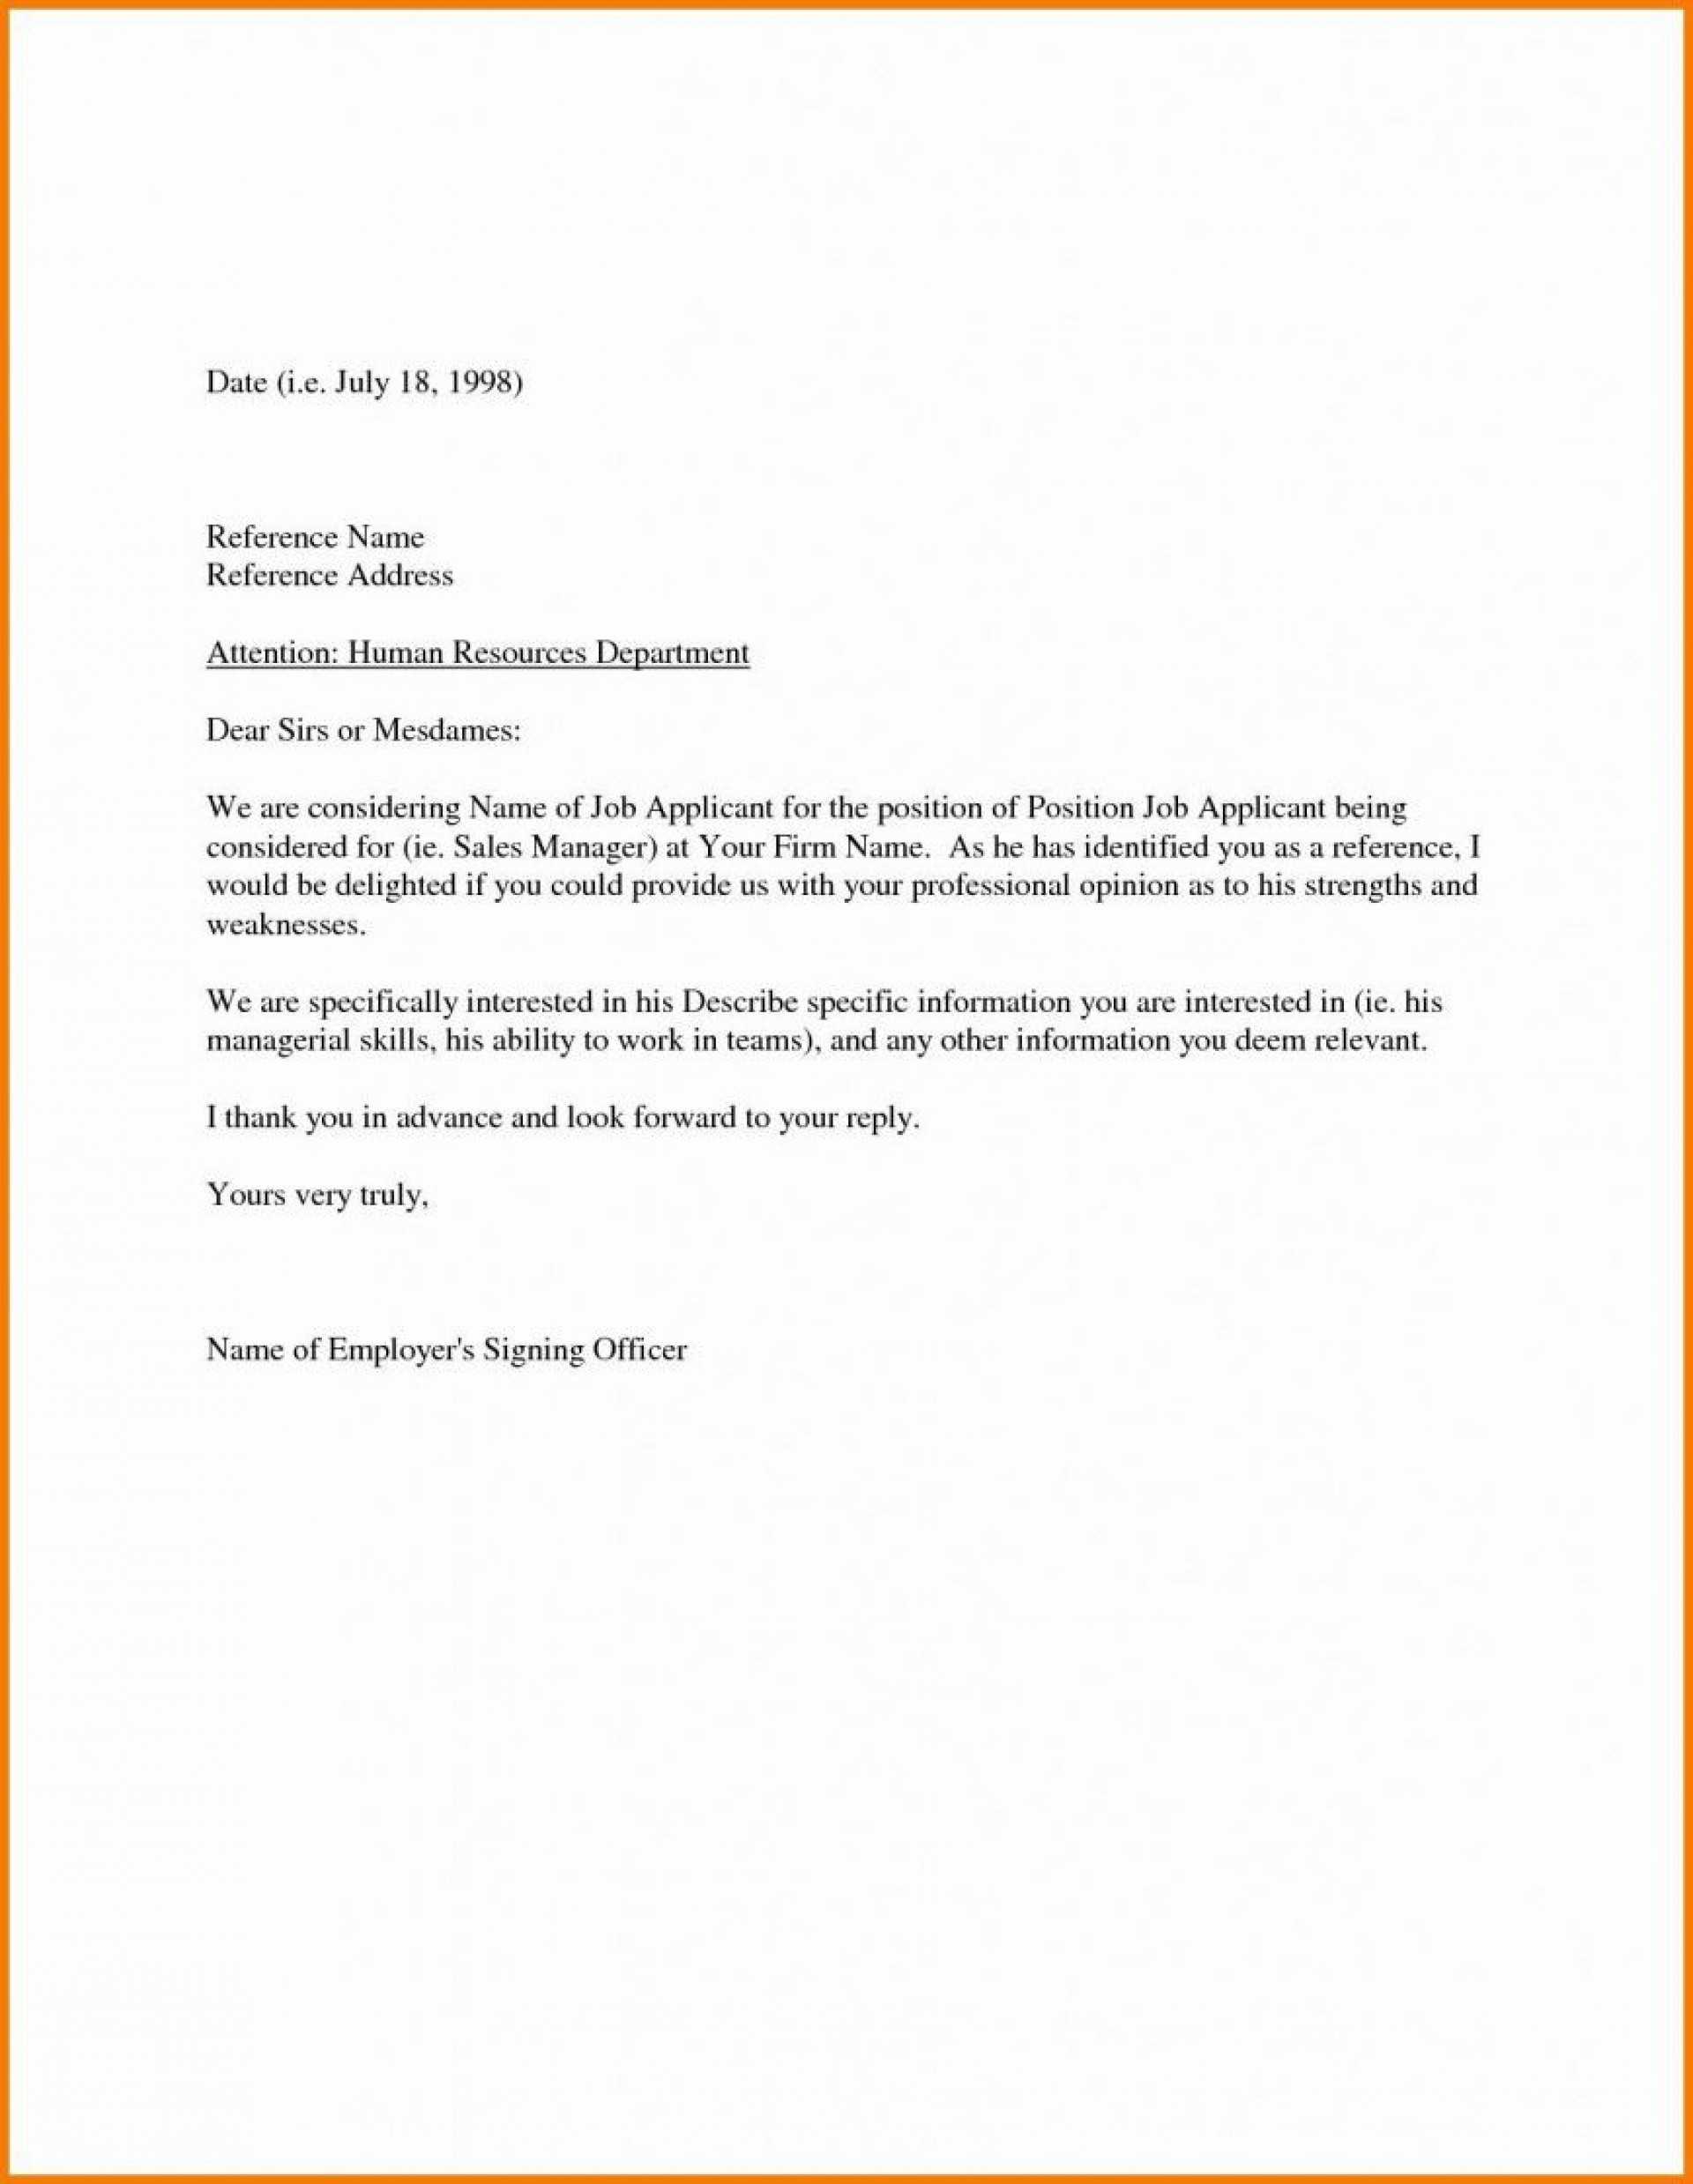 000 Top Professional Reference Letter Template Word Image 1920